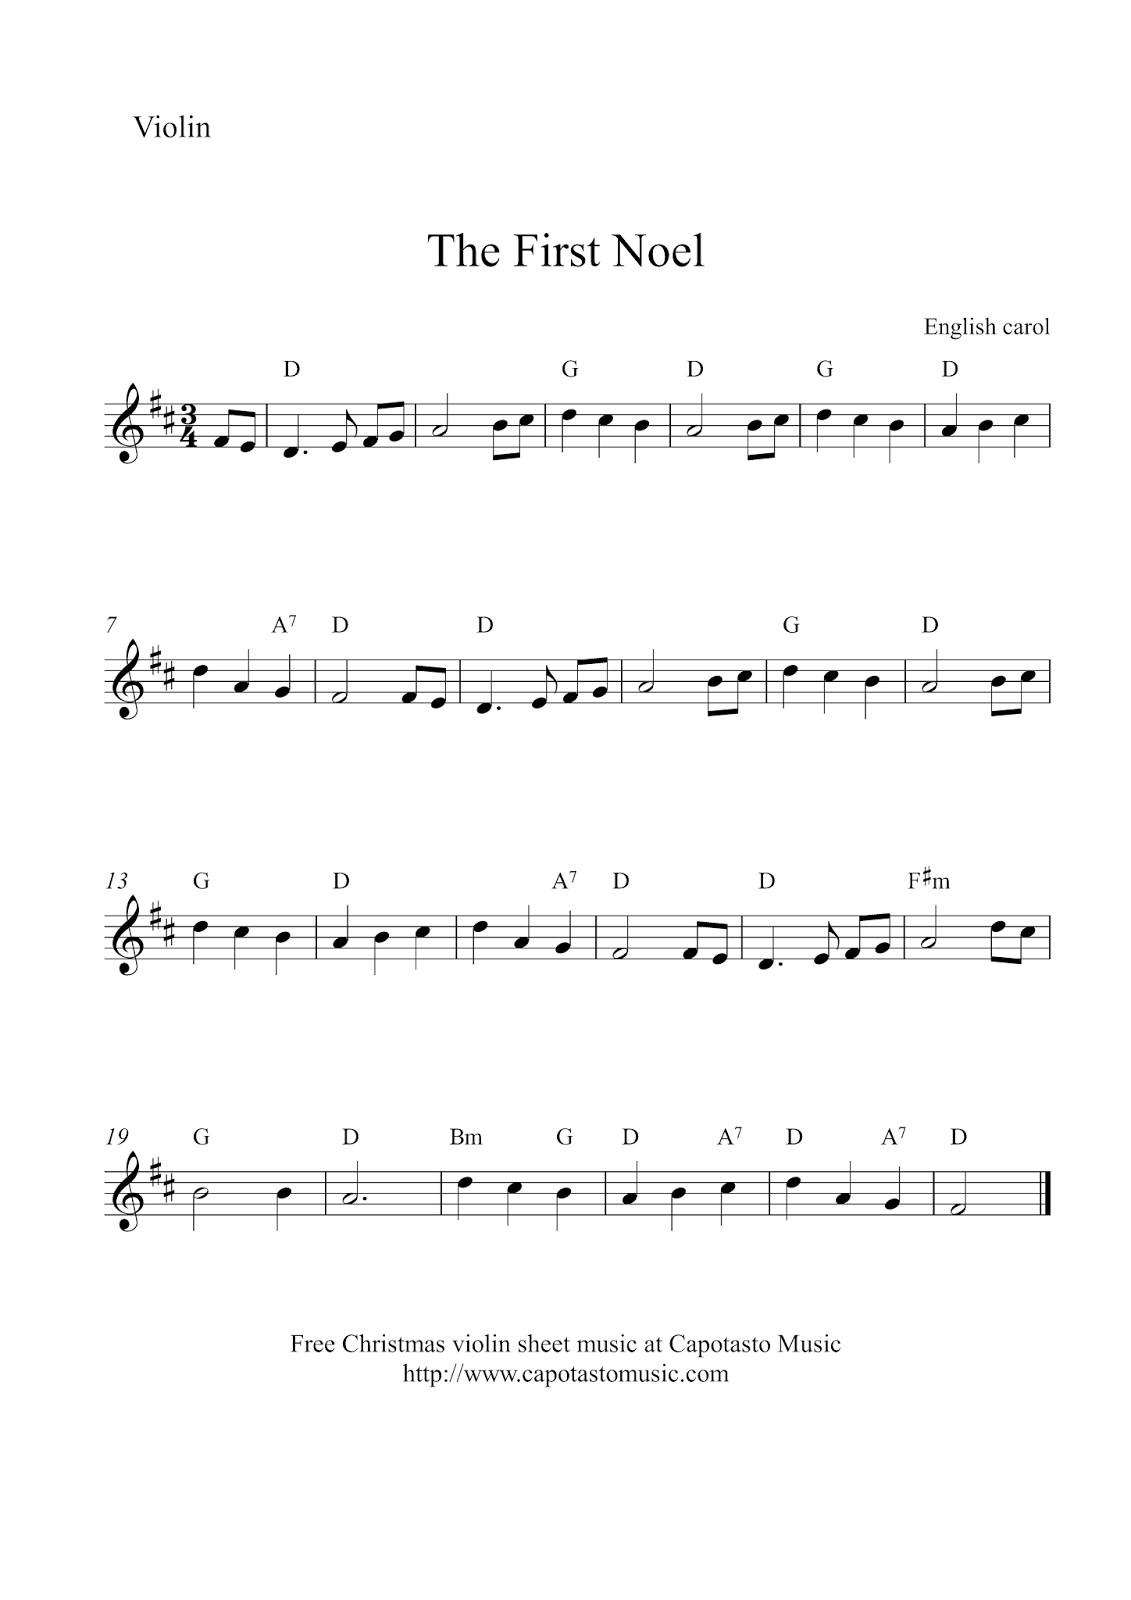 This Beautiful Cover of The First Noel Will Give You Goosebumps advise